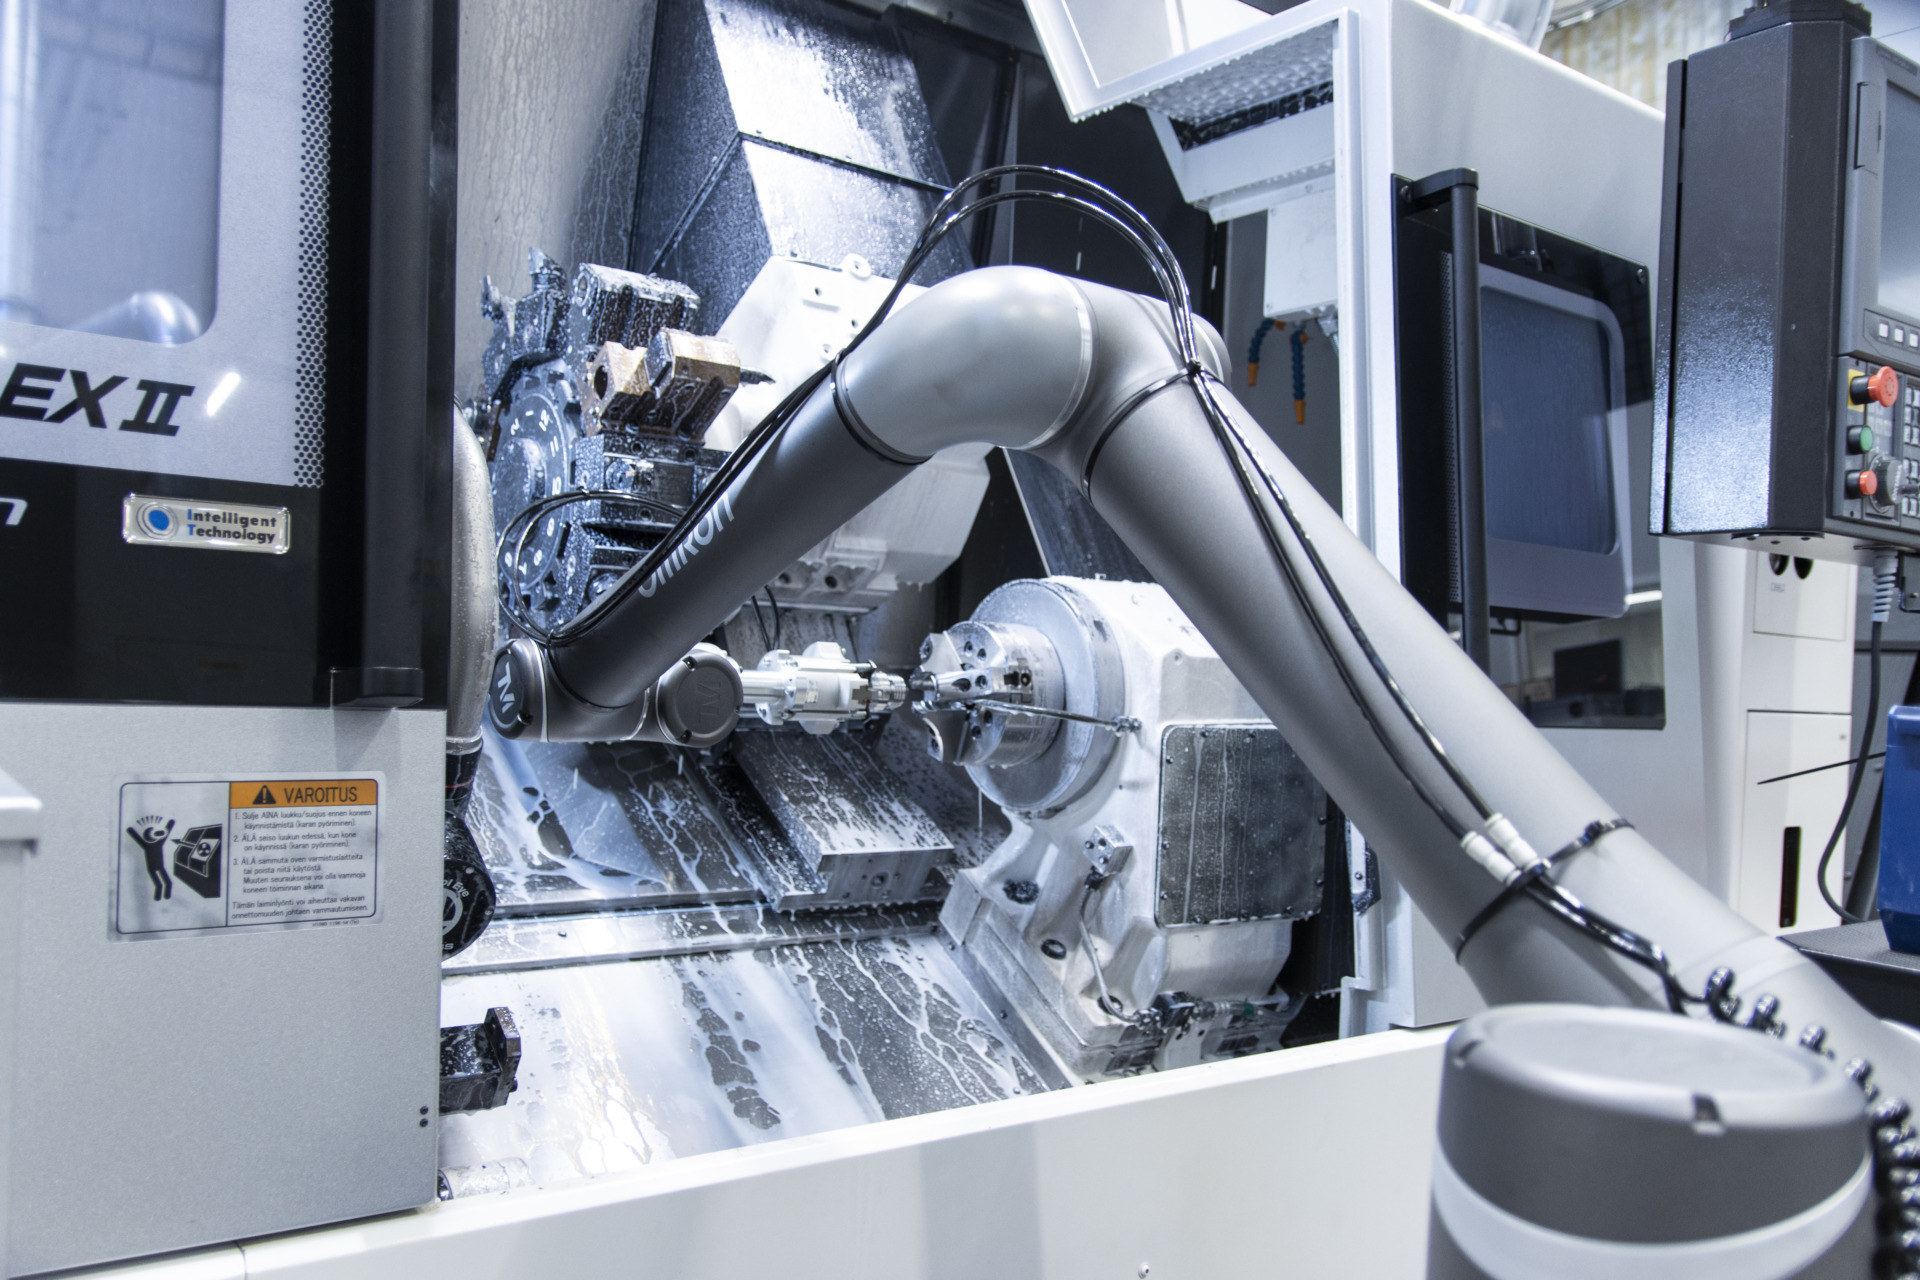 A co-bot removing an item from a machining centre